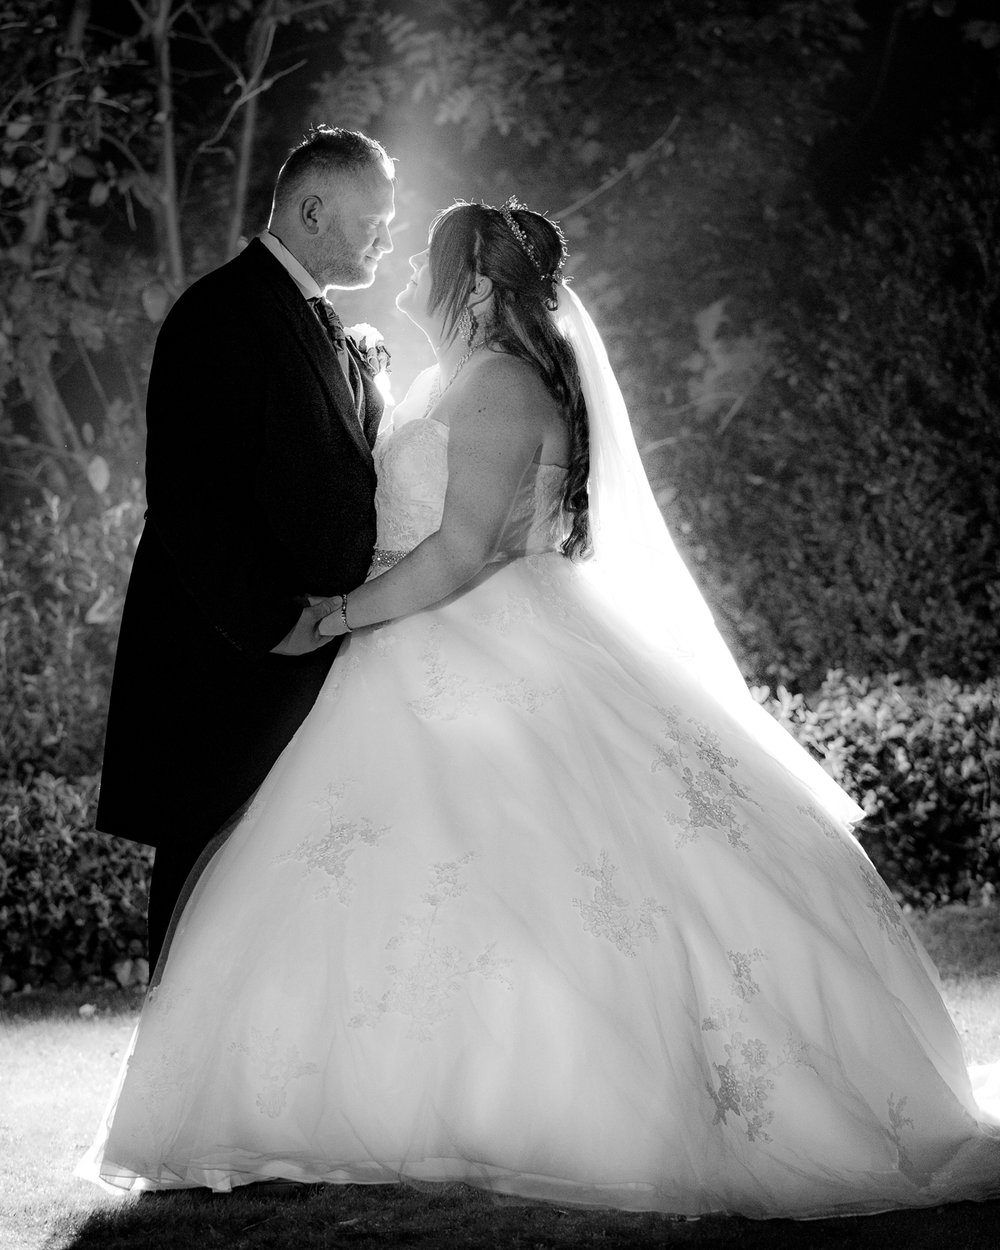 Mr & Mrs Wise-375.jpg